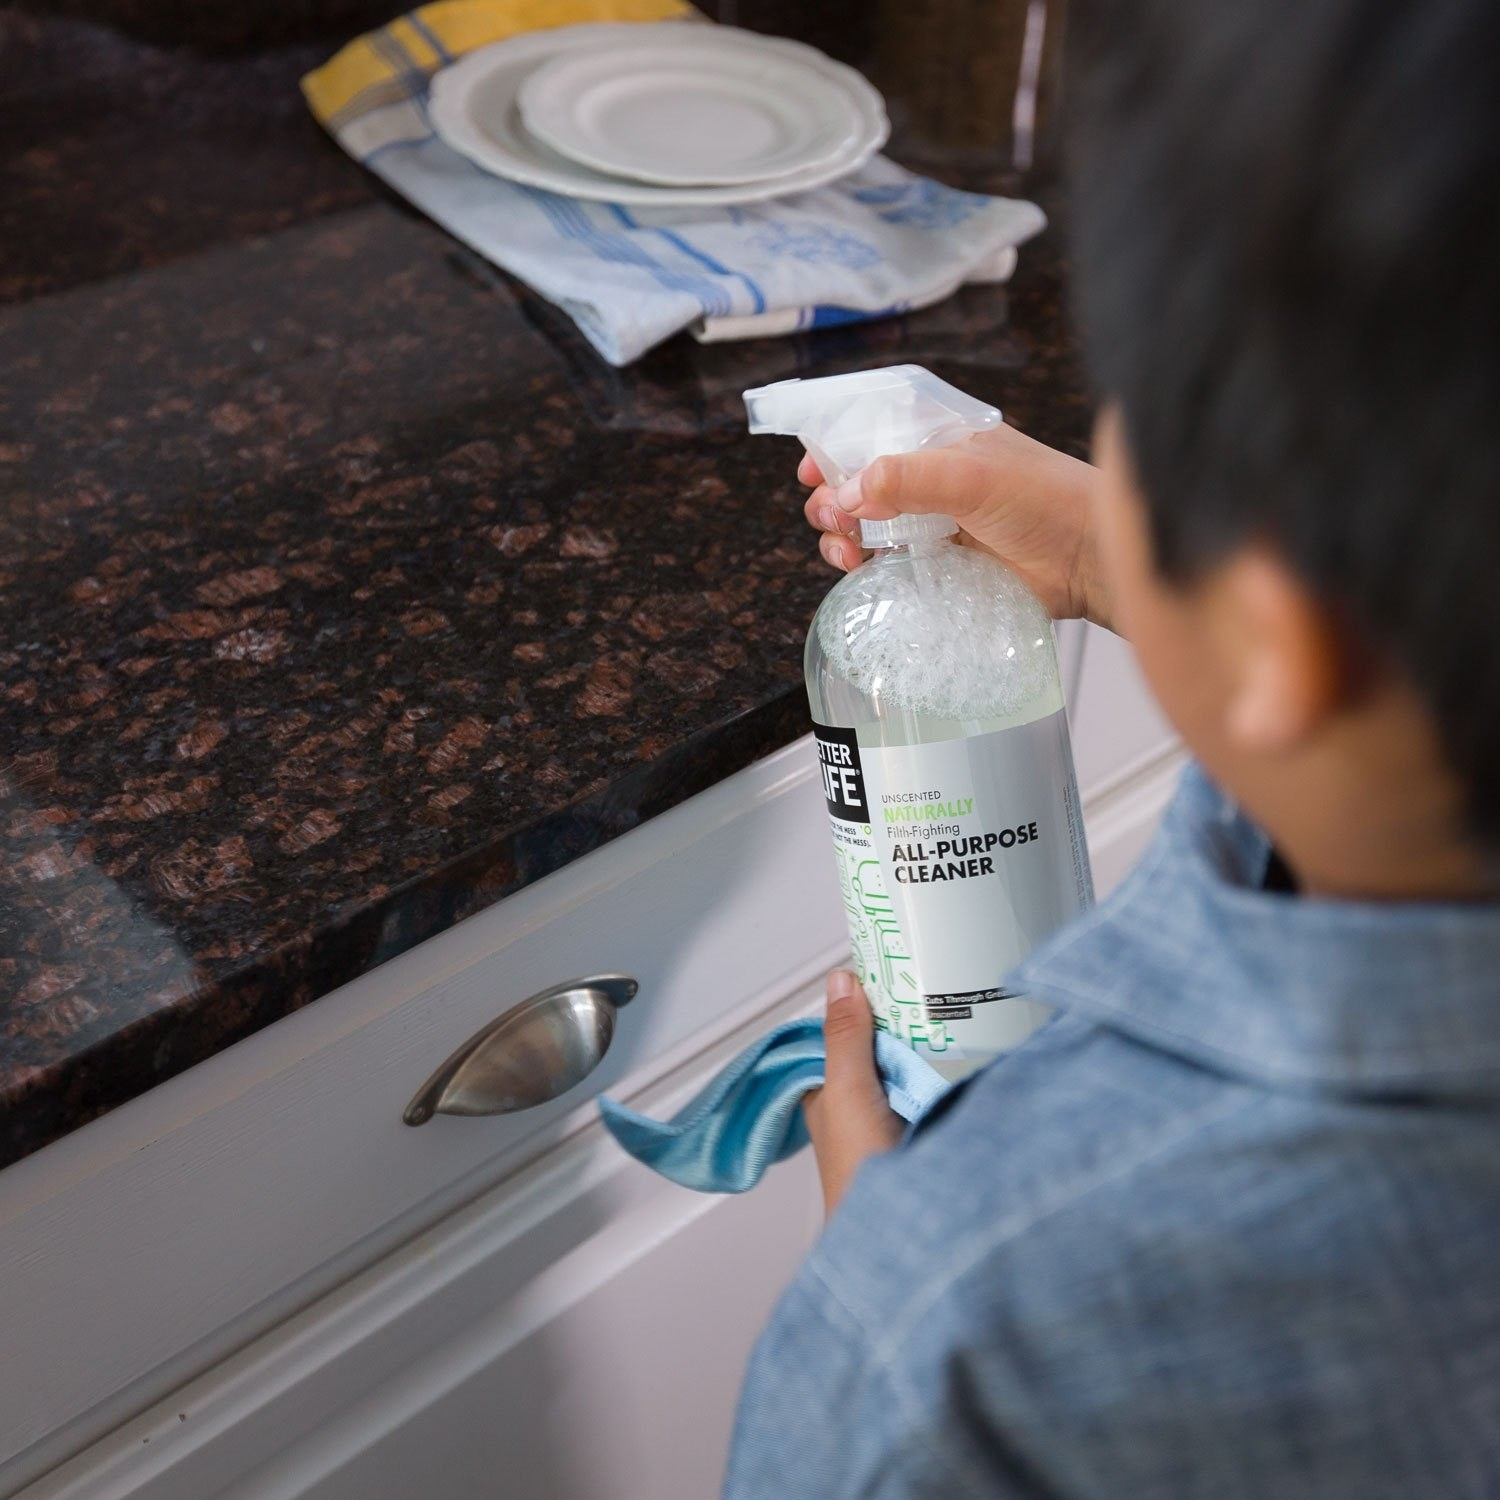 A kid cleaning the counter with the all-purpose cleaner